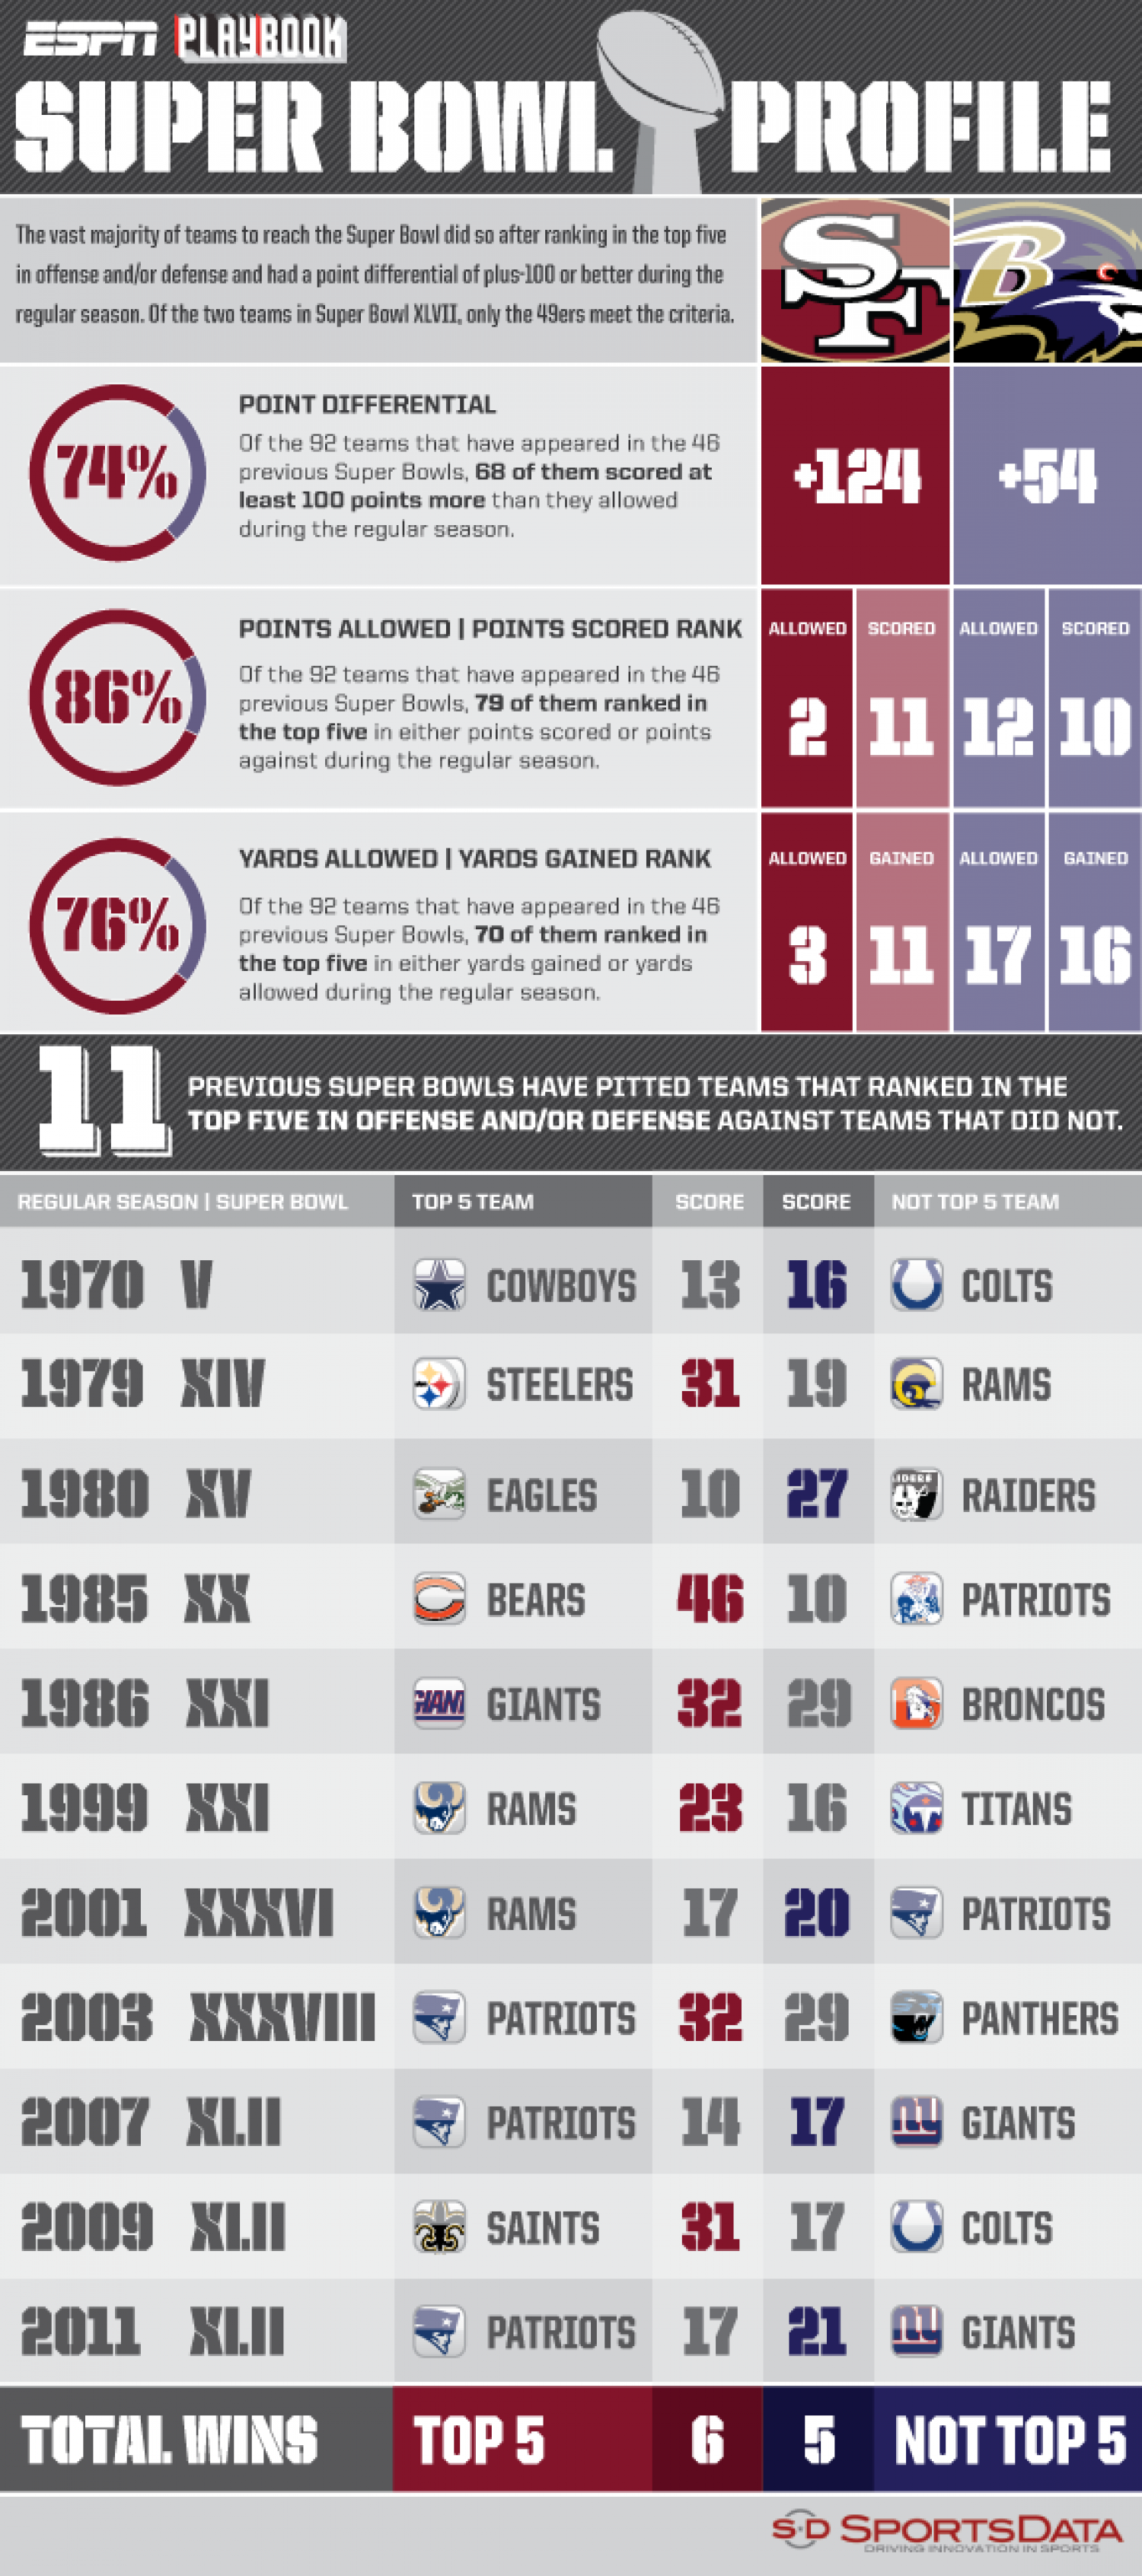 2013 Super Bowl Profile Infographic